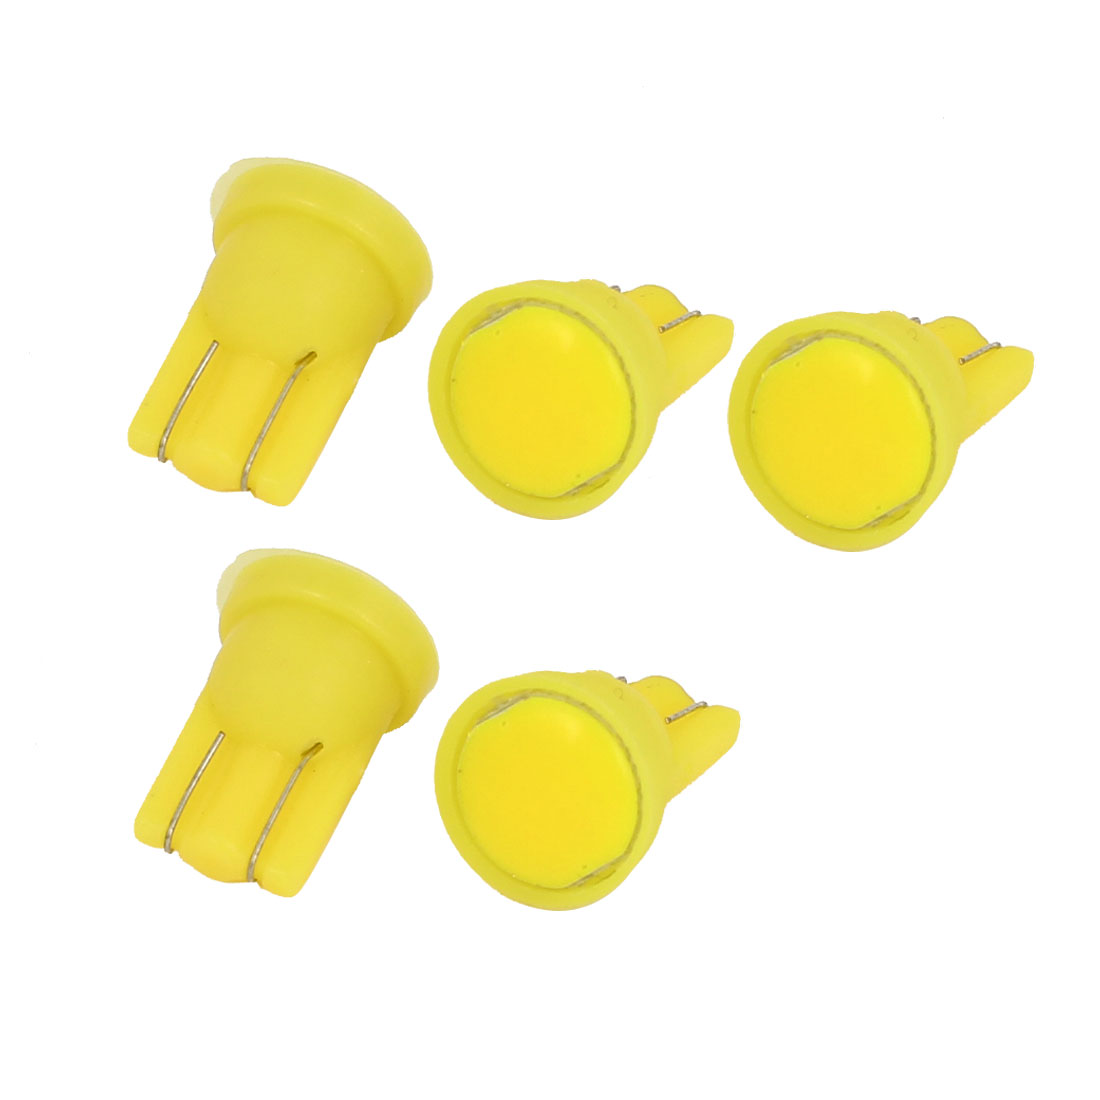 5 Pcs Car Wedge Yellow 6 Clip COB LED T10 Side Tail Turning Bulb Lamp